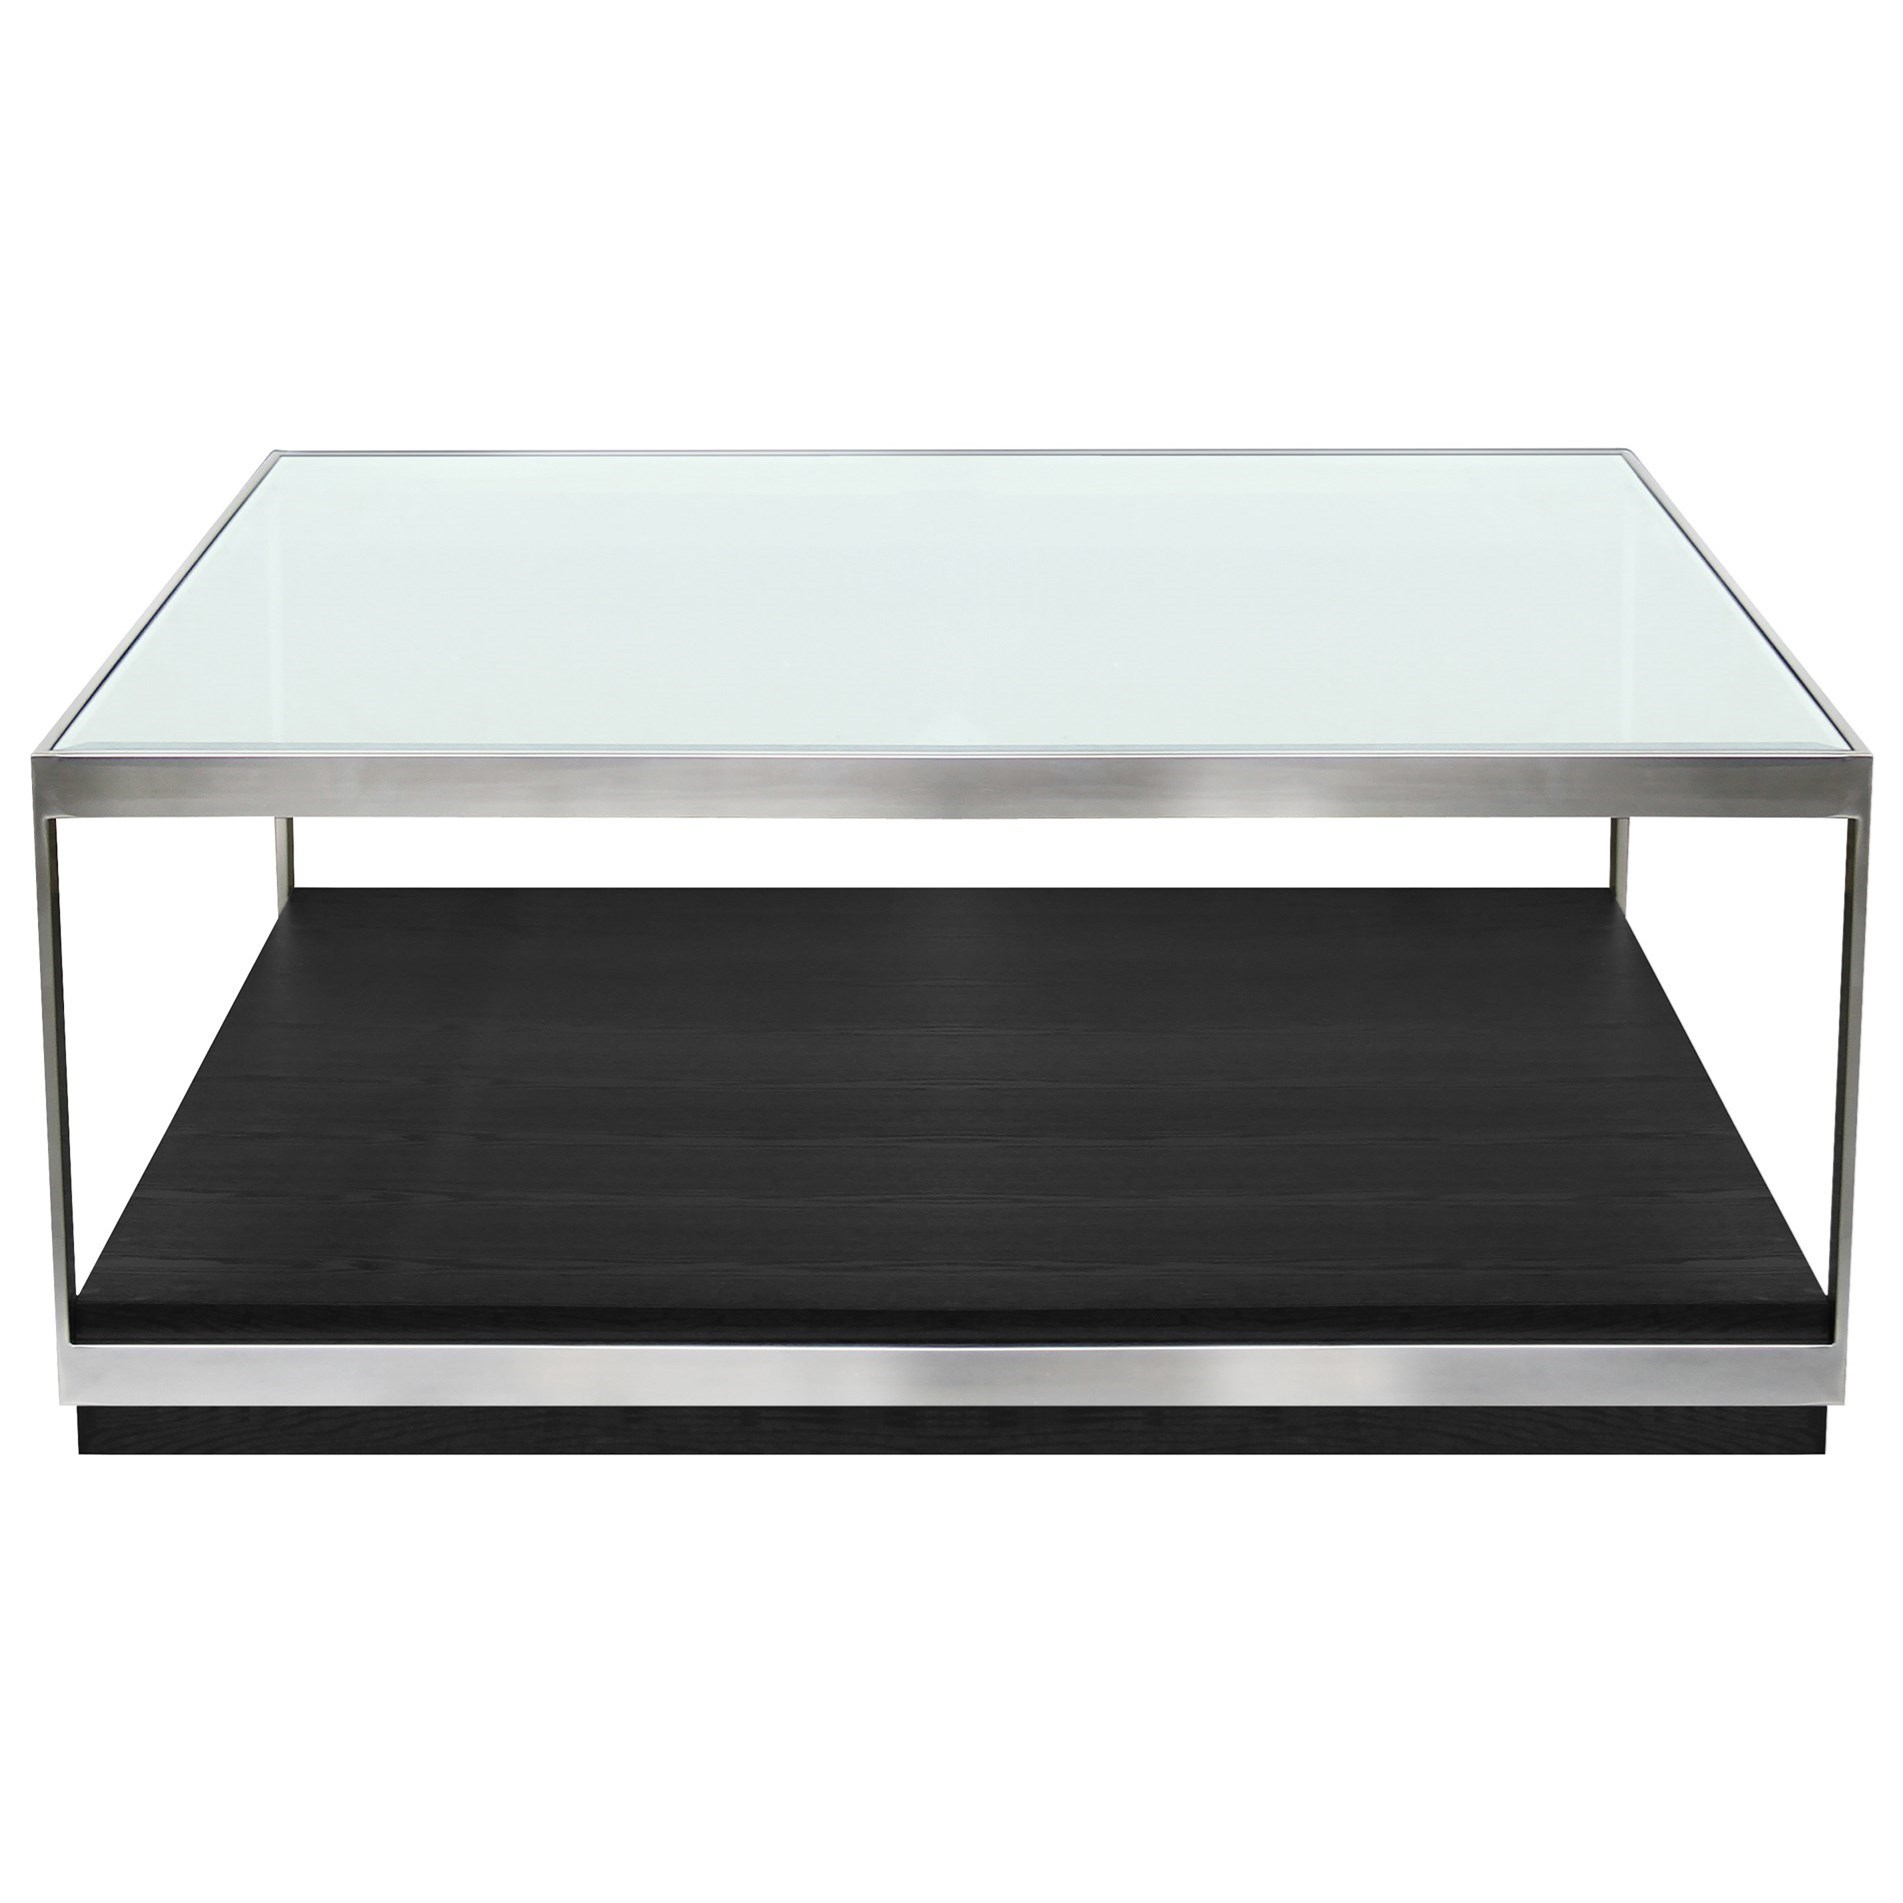 Manchester Contemporary Coffee Table at Sadler's Home Furnishings